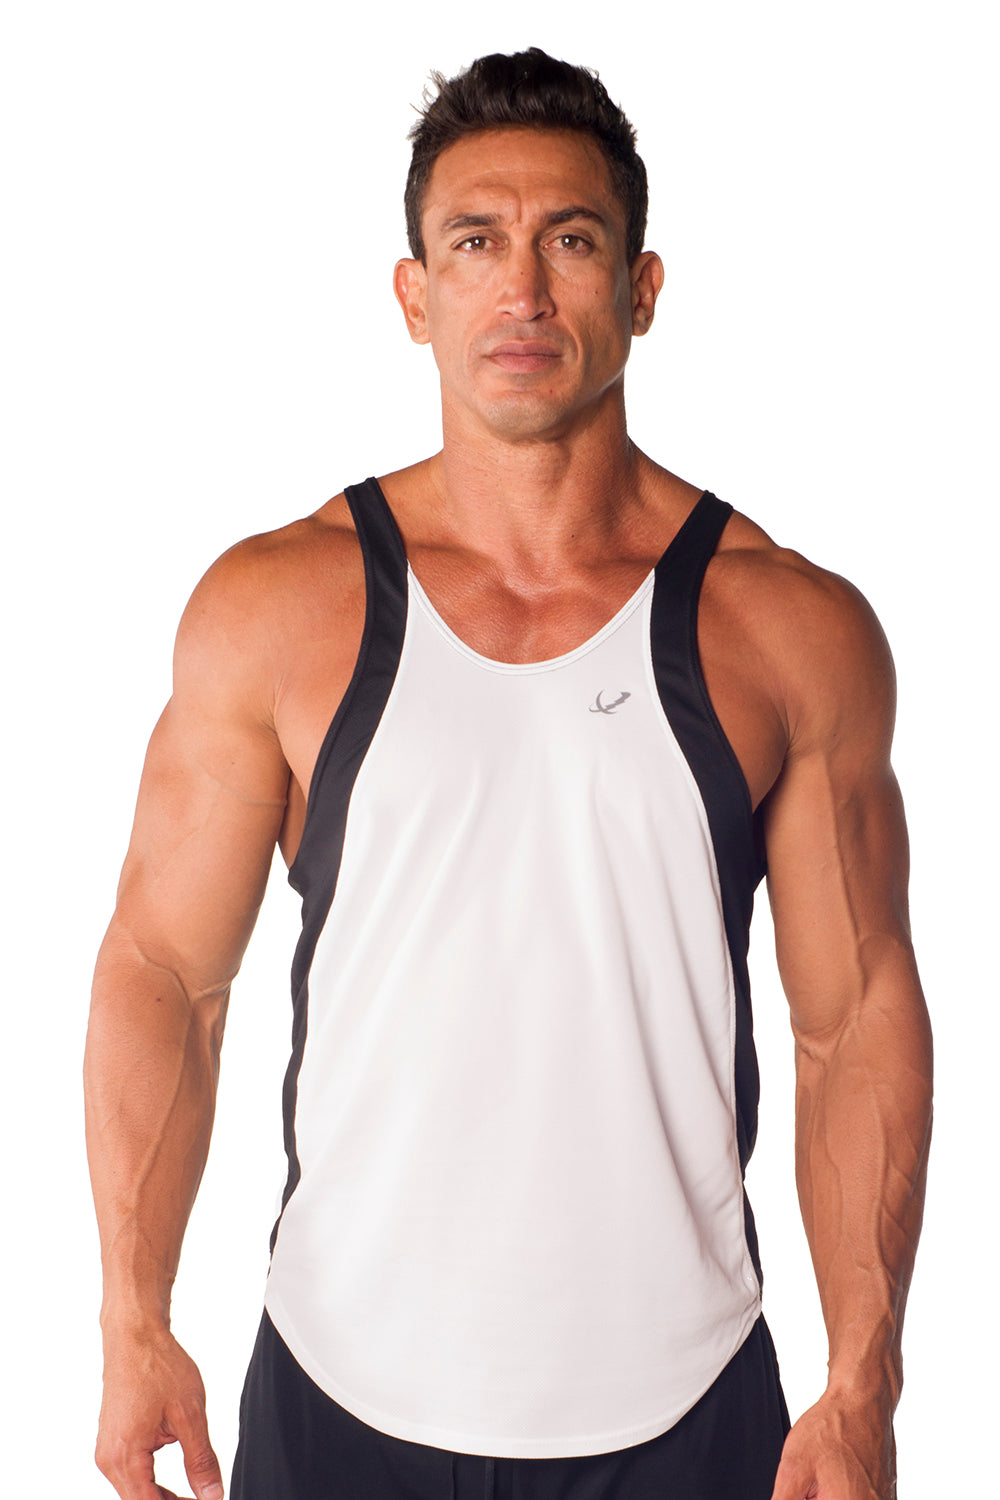 pitbull two tone dri-fit tank charcoal white trim body lifting apparel gym clothes weight training